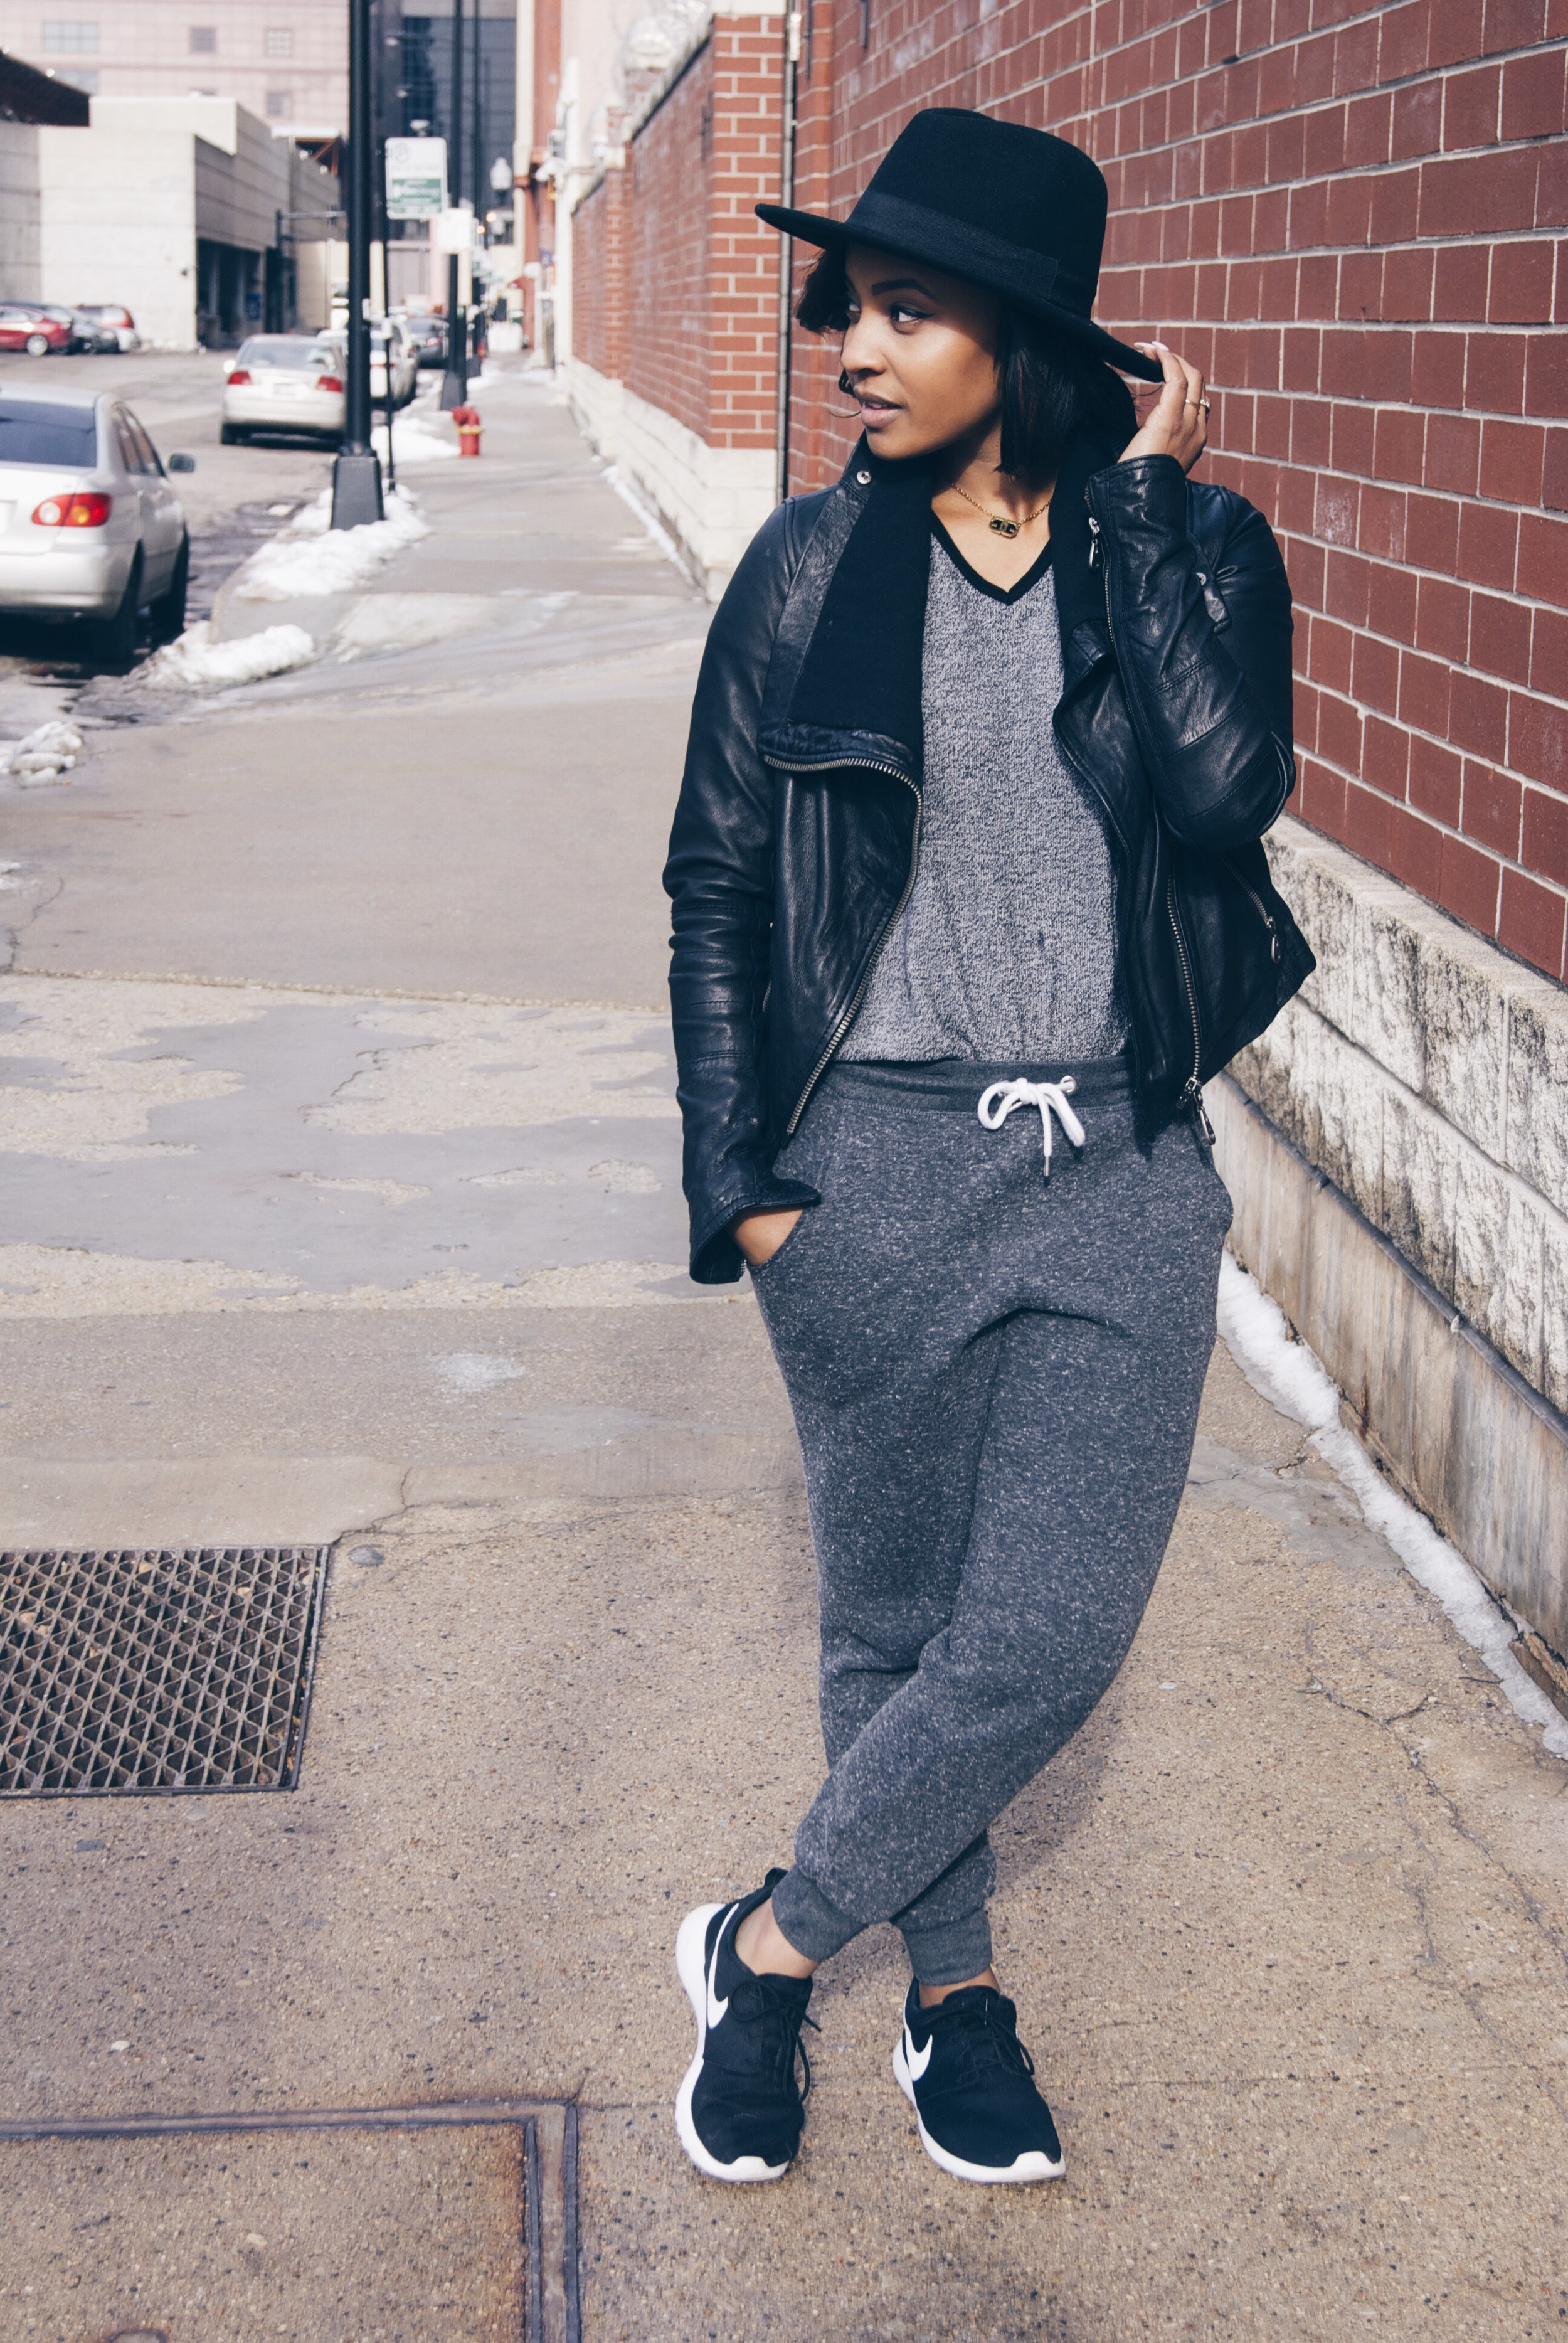 Hat: H&M / Jacket: Doma / Shirt: Thrifted / Sweatpants: TopShop / Shoes: Nike / Necklace: Givenchy / Ring: Kate Spade